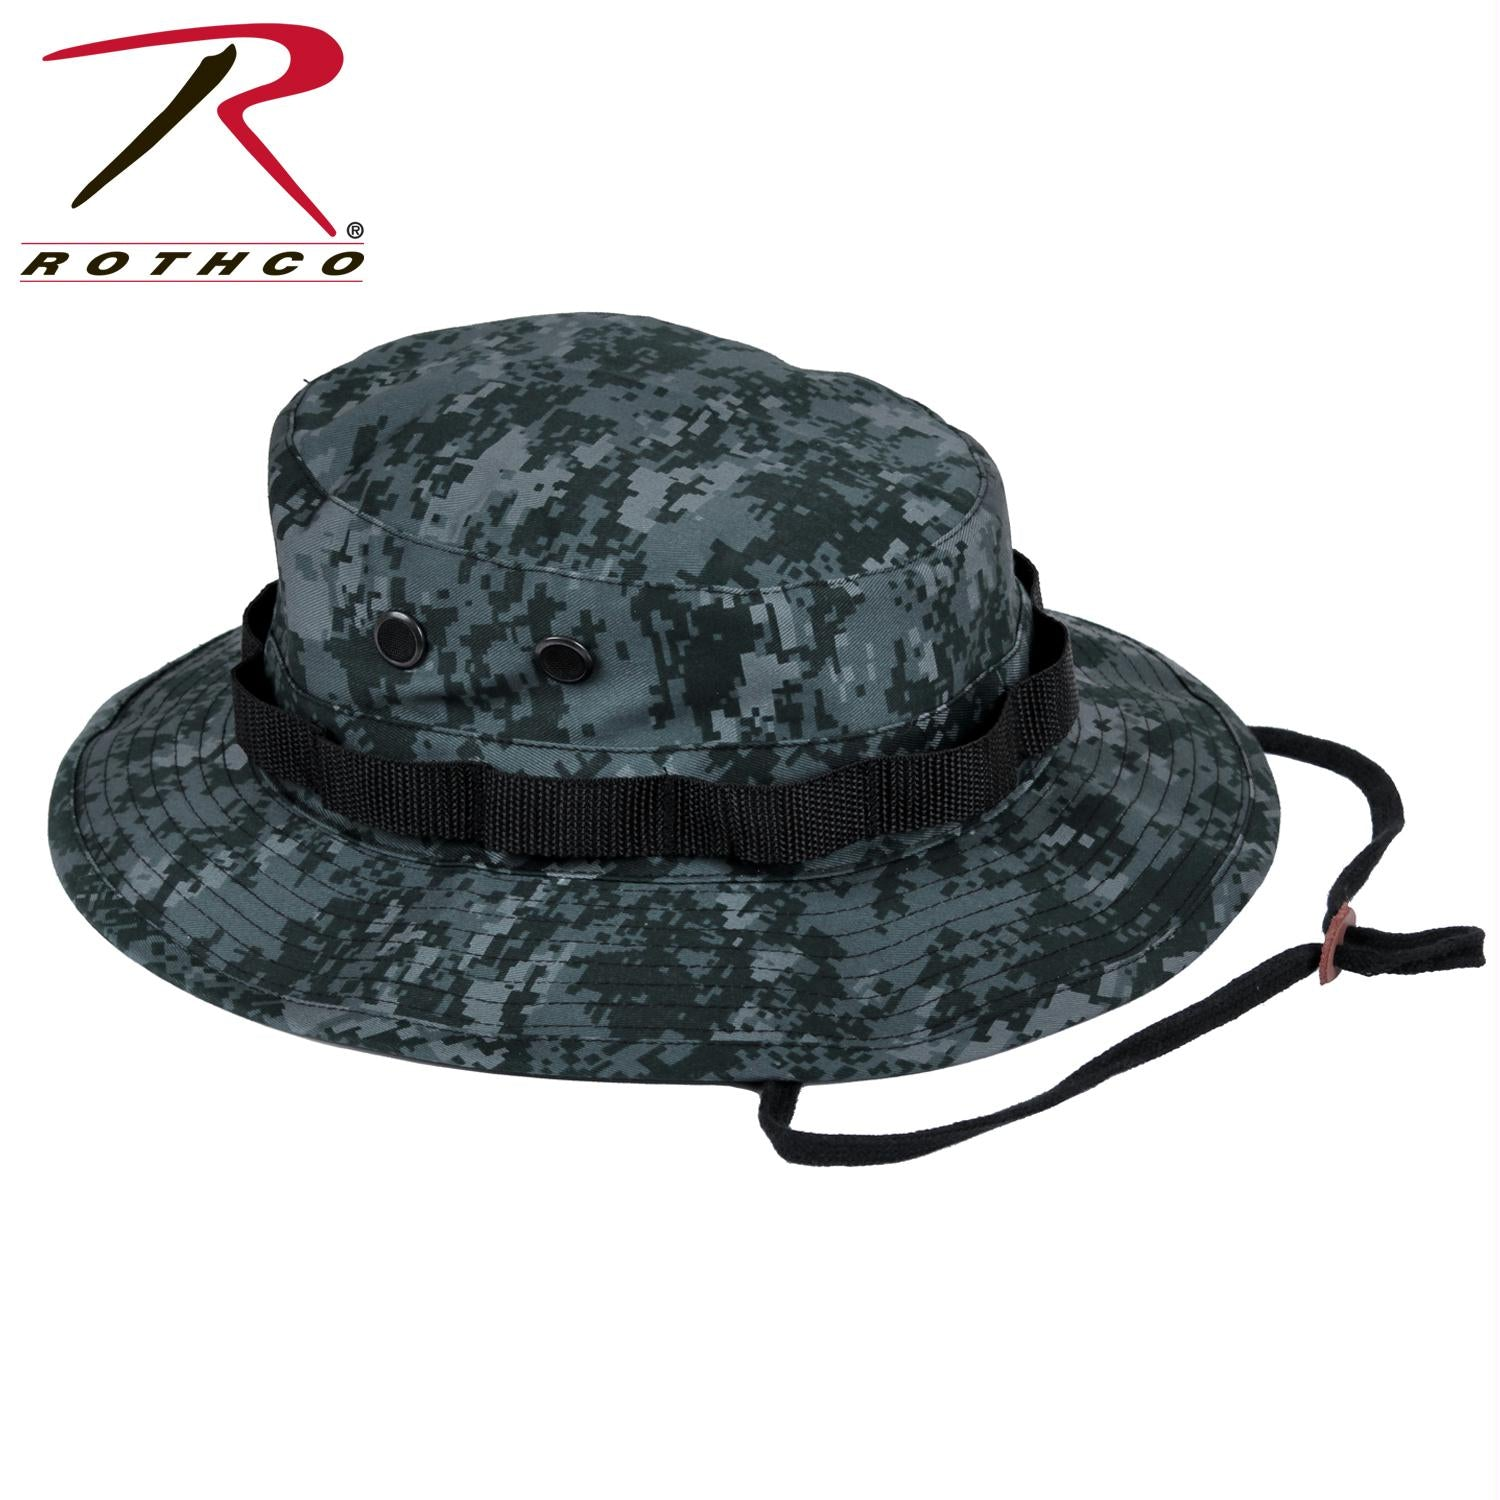 Rothco Digital Camo Boonie Hat - Midnight Digital Camo / 7